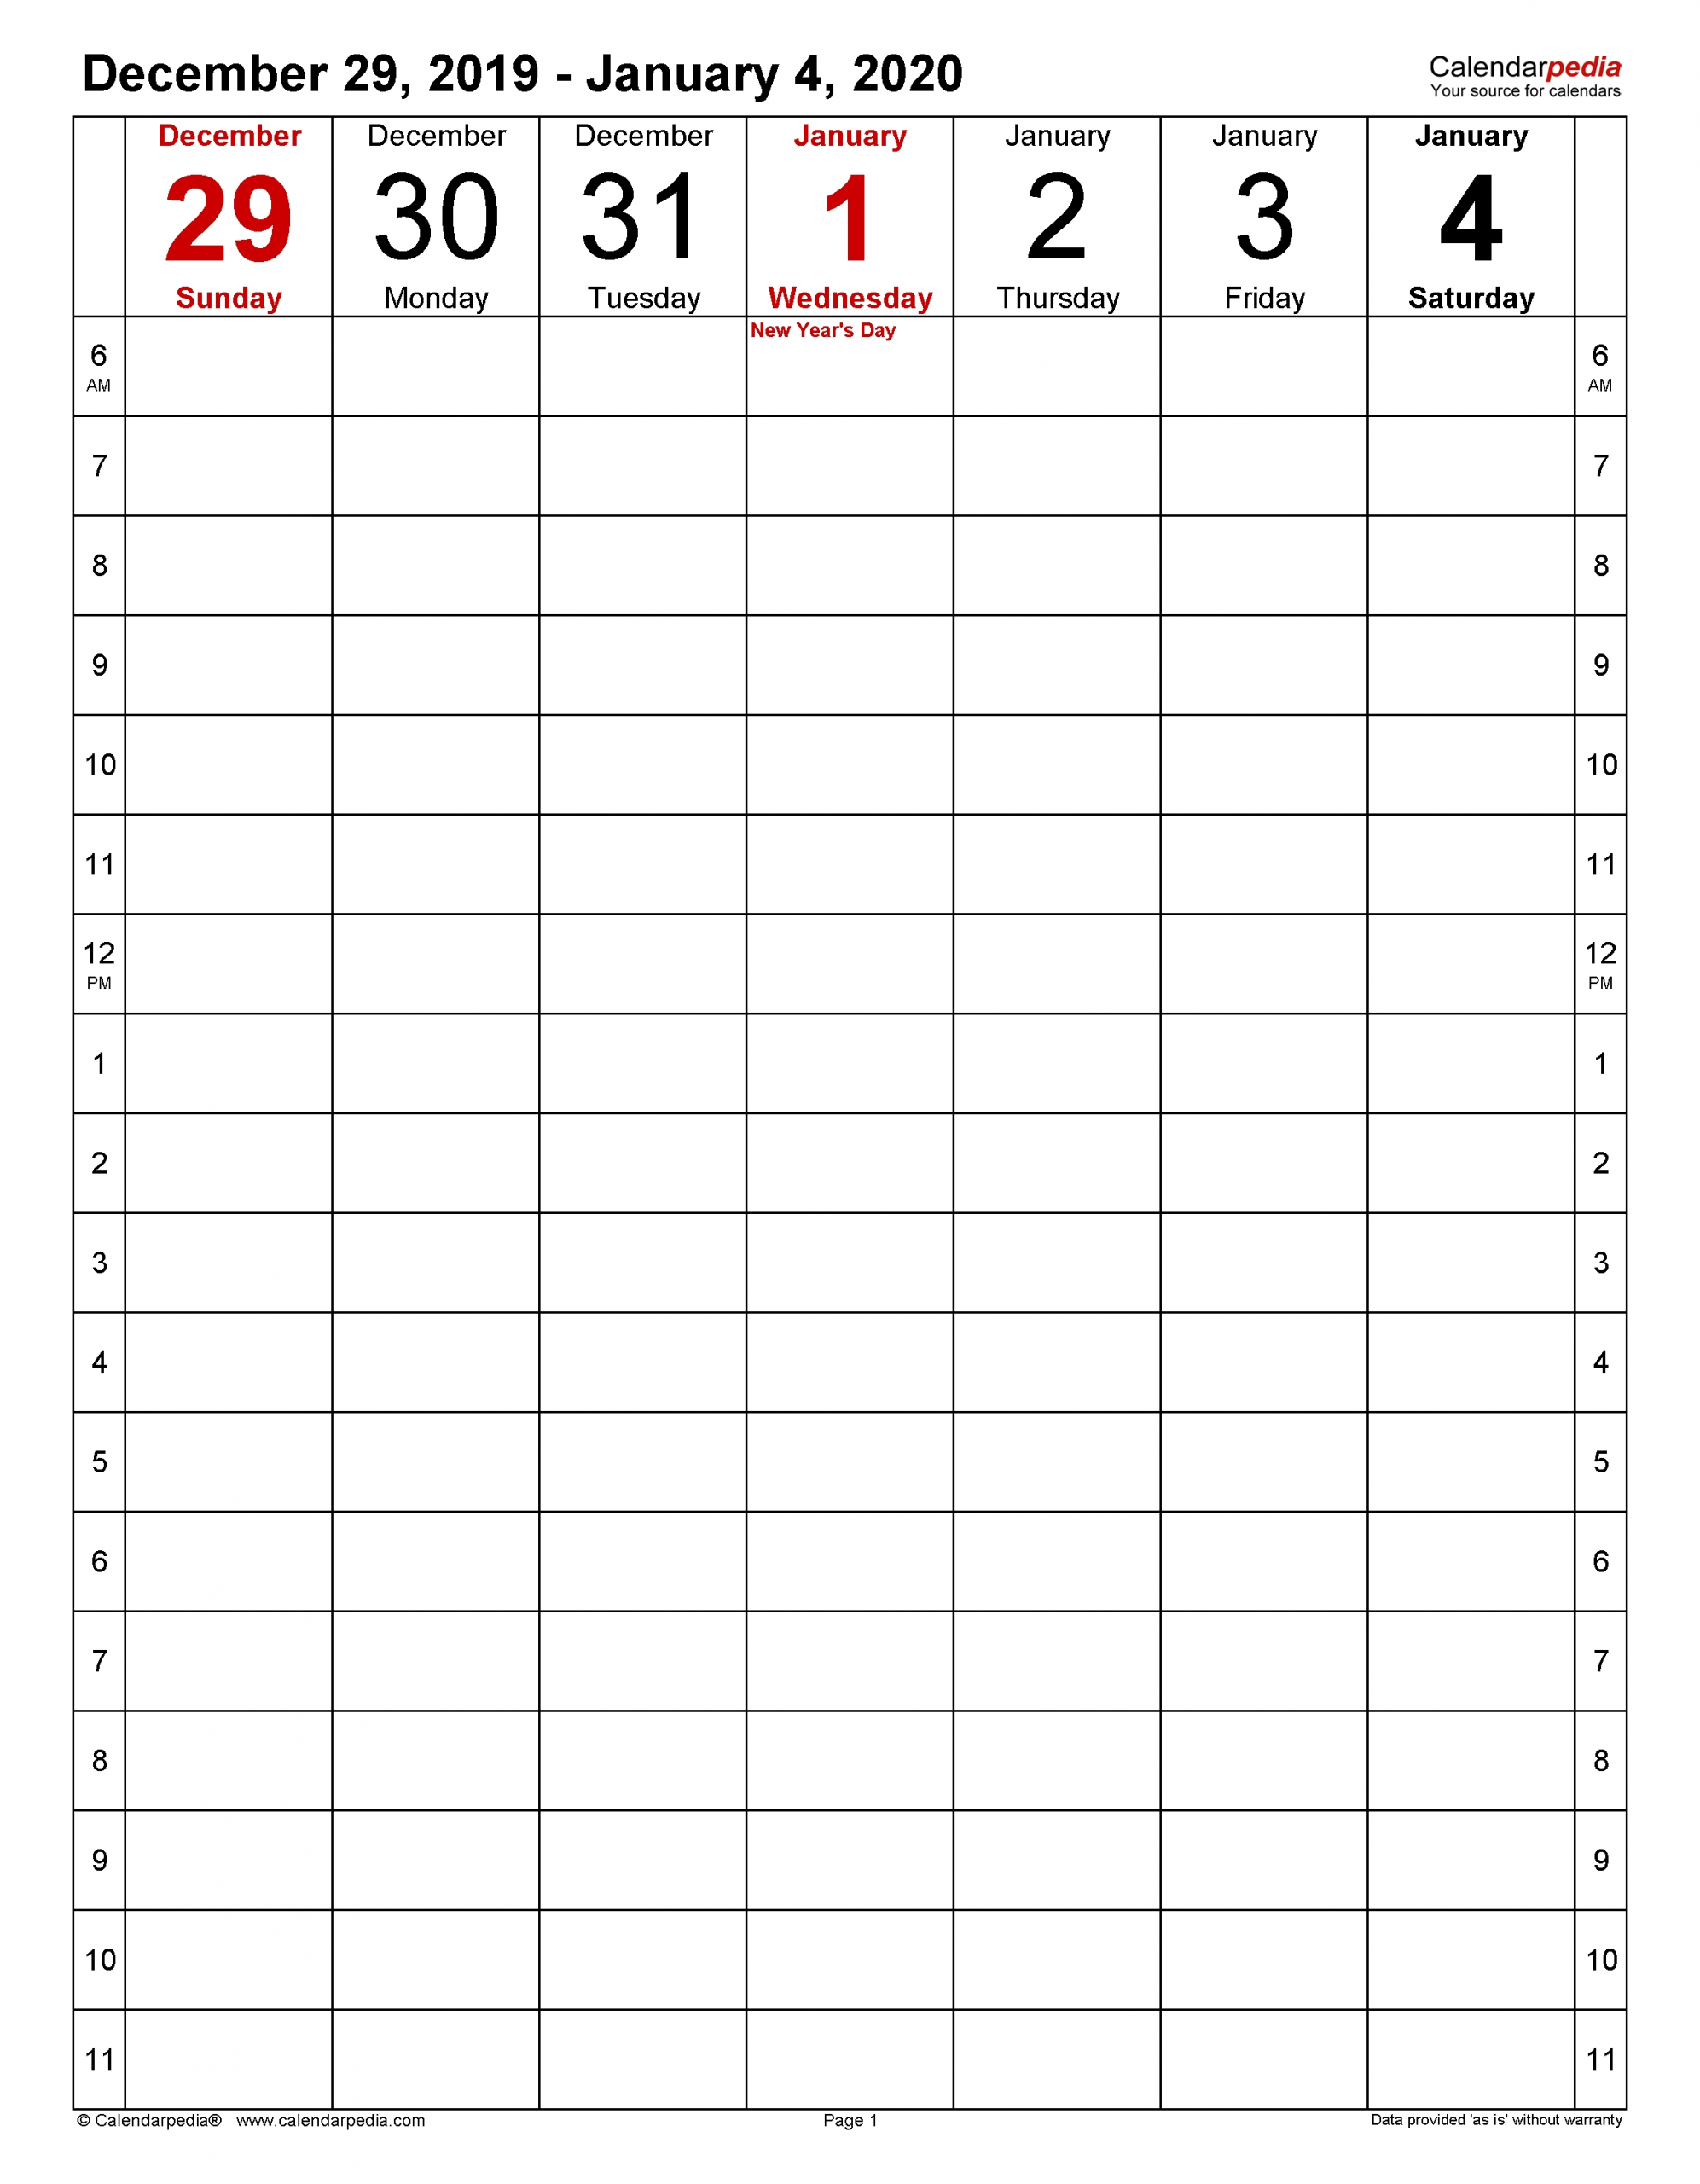 Catch Calendar Template June 2021 With Time Slots